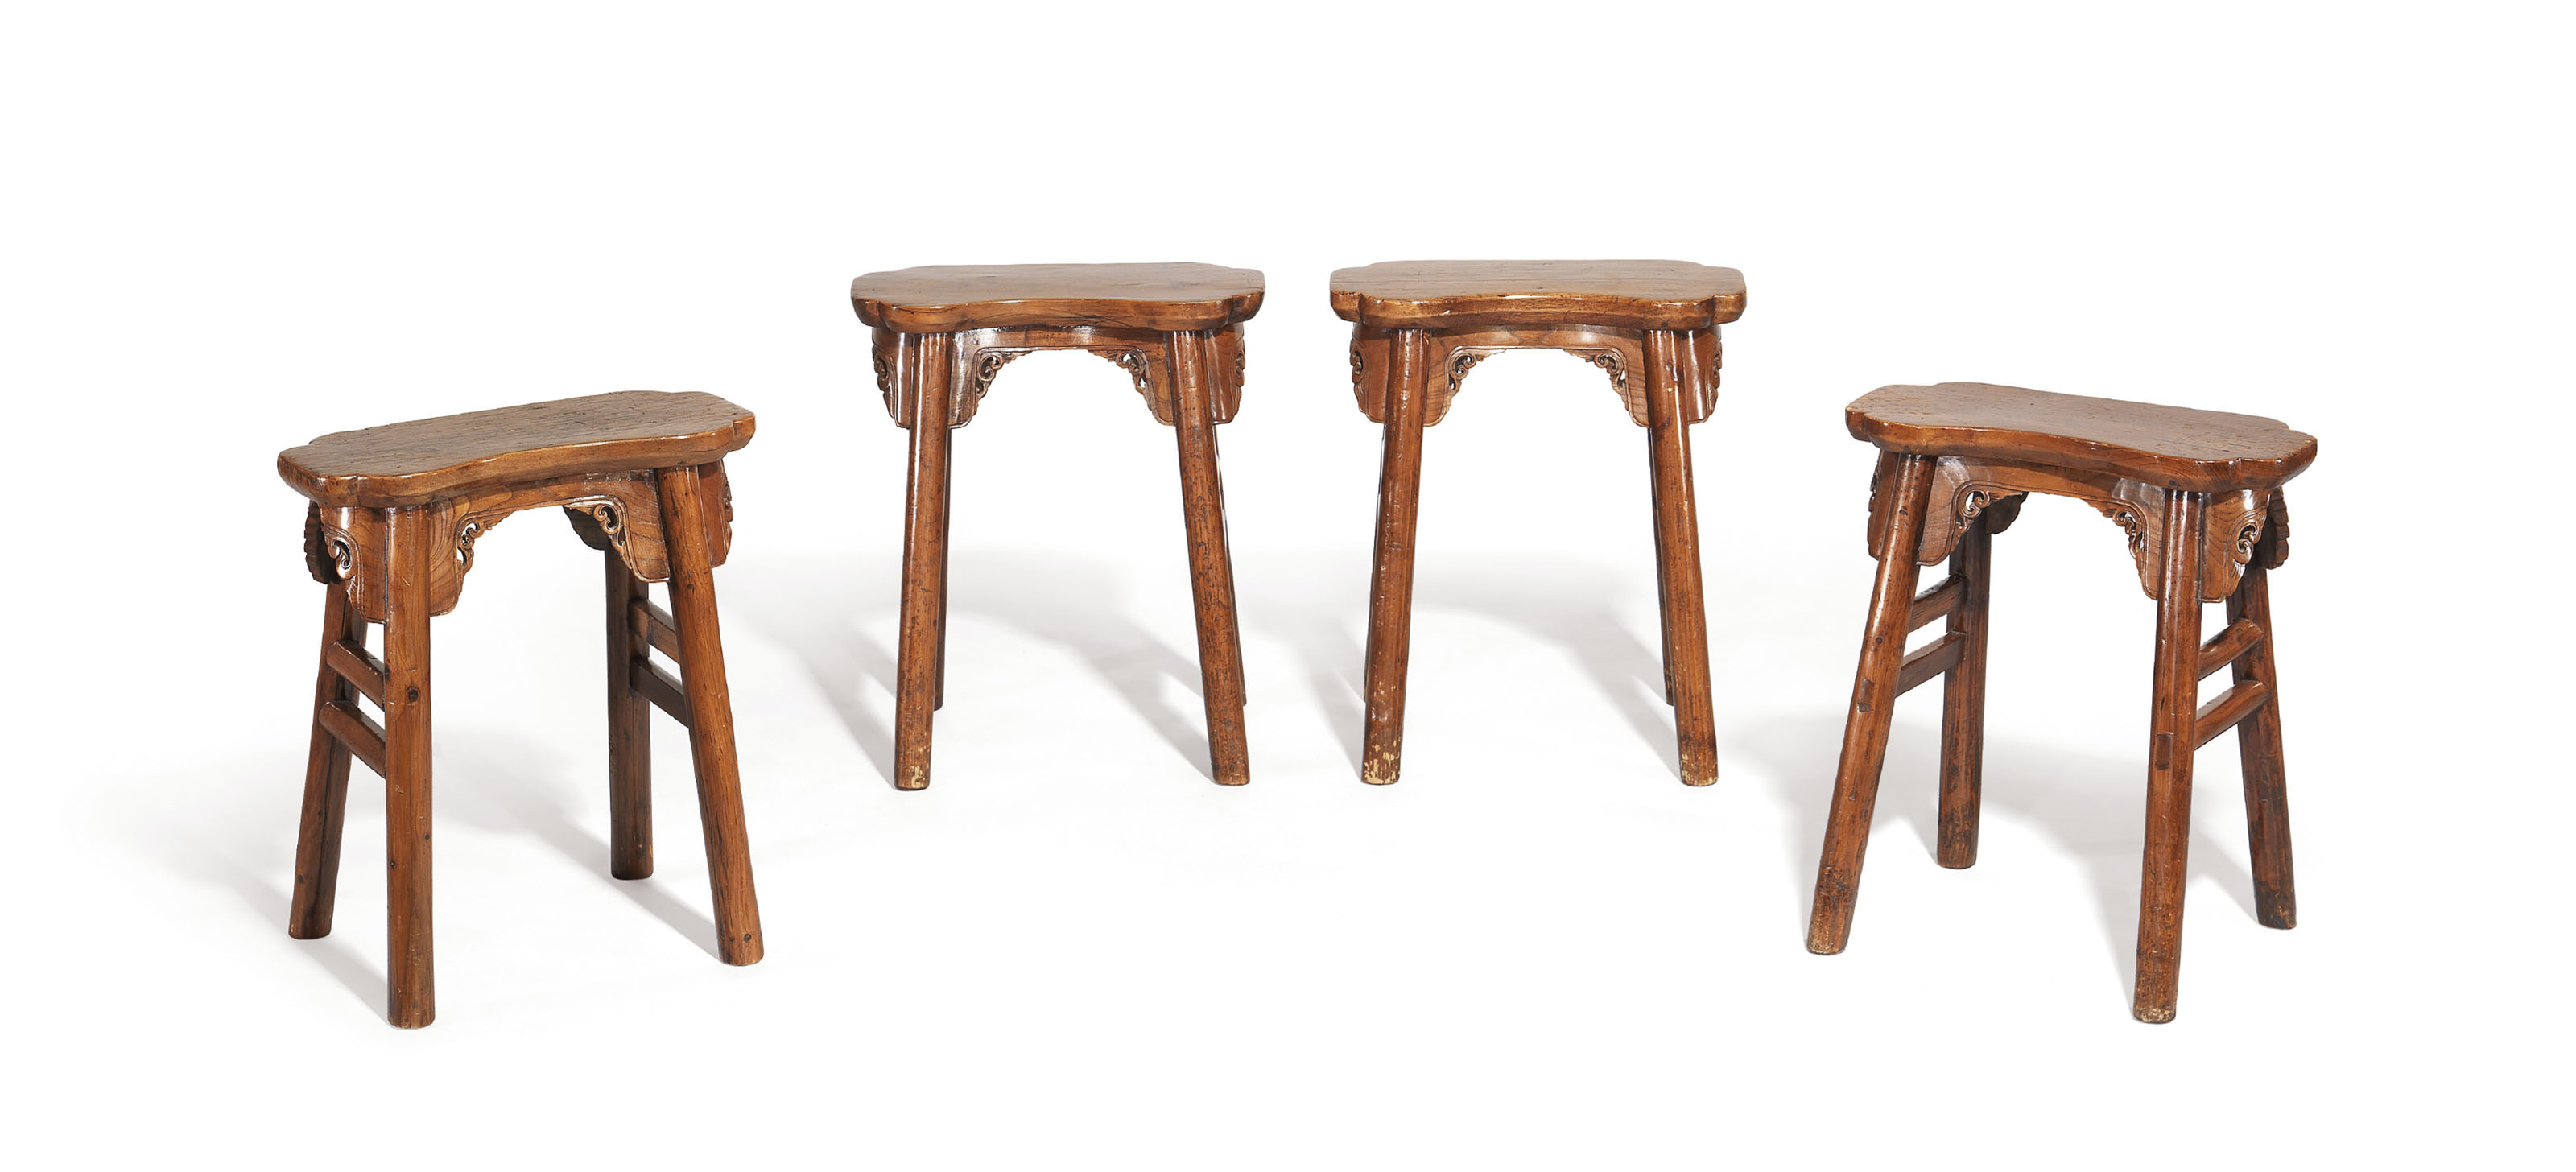 A RARE SET OF FOUR CYPRESS AND